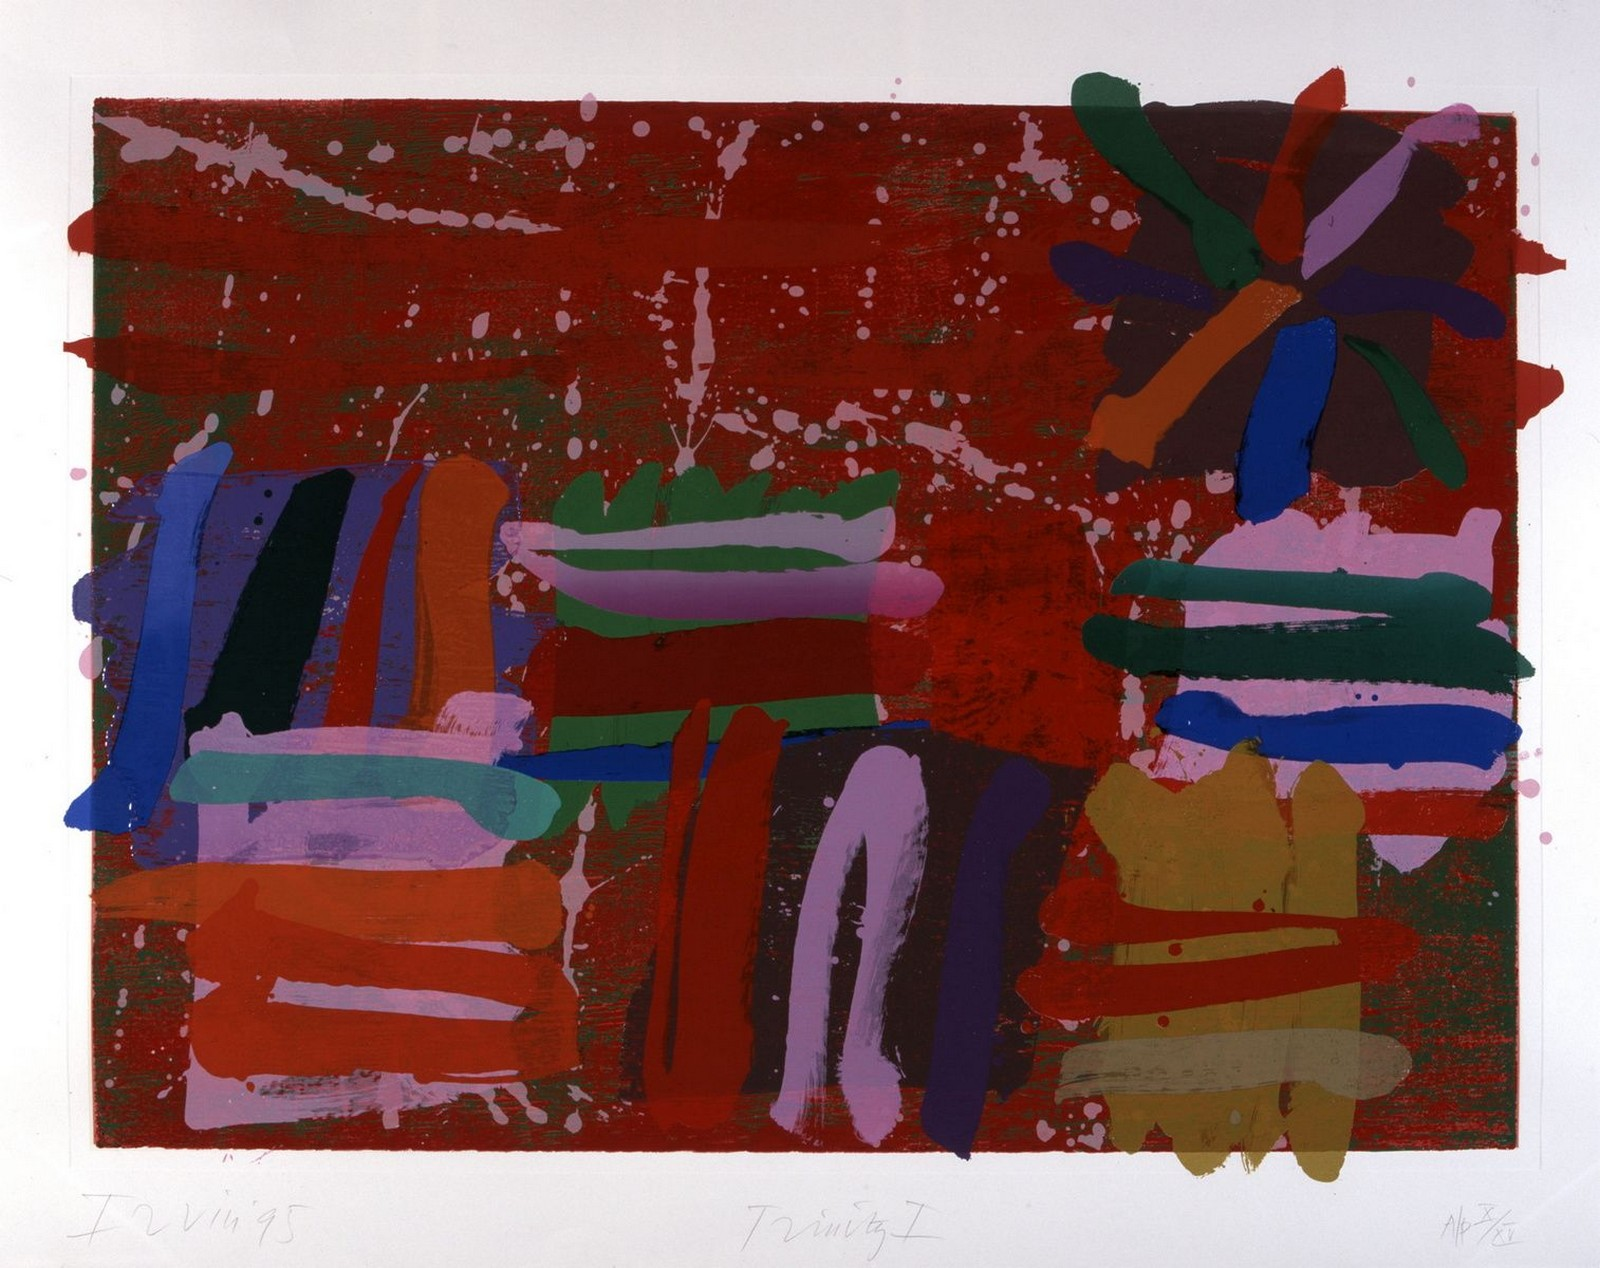 1995, lithograph on paper, signed and dated, 10/125, 160 x 130 cm